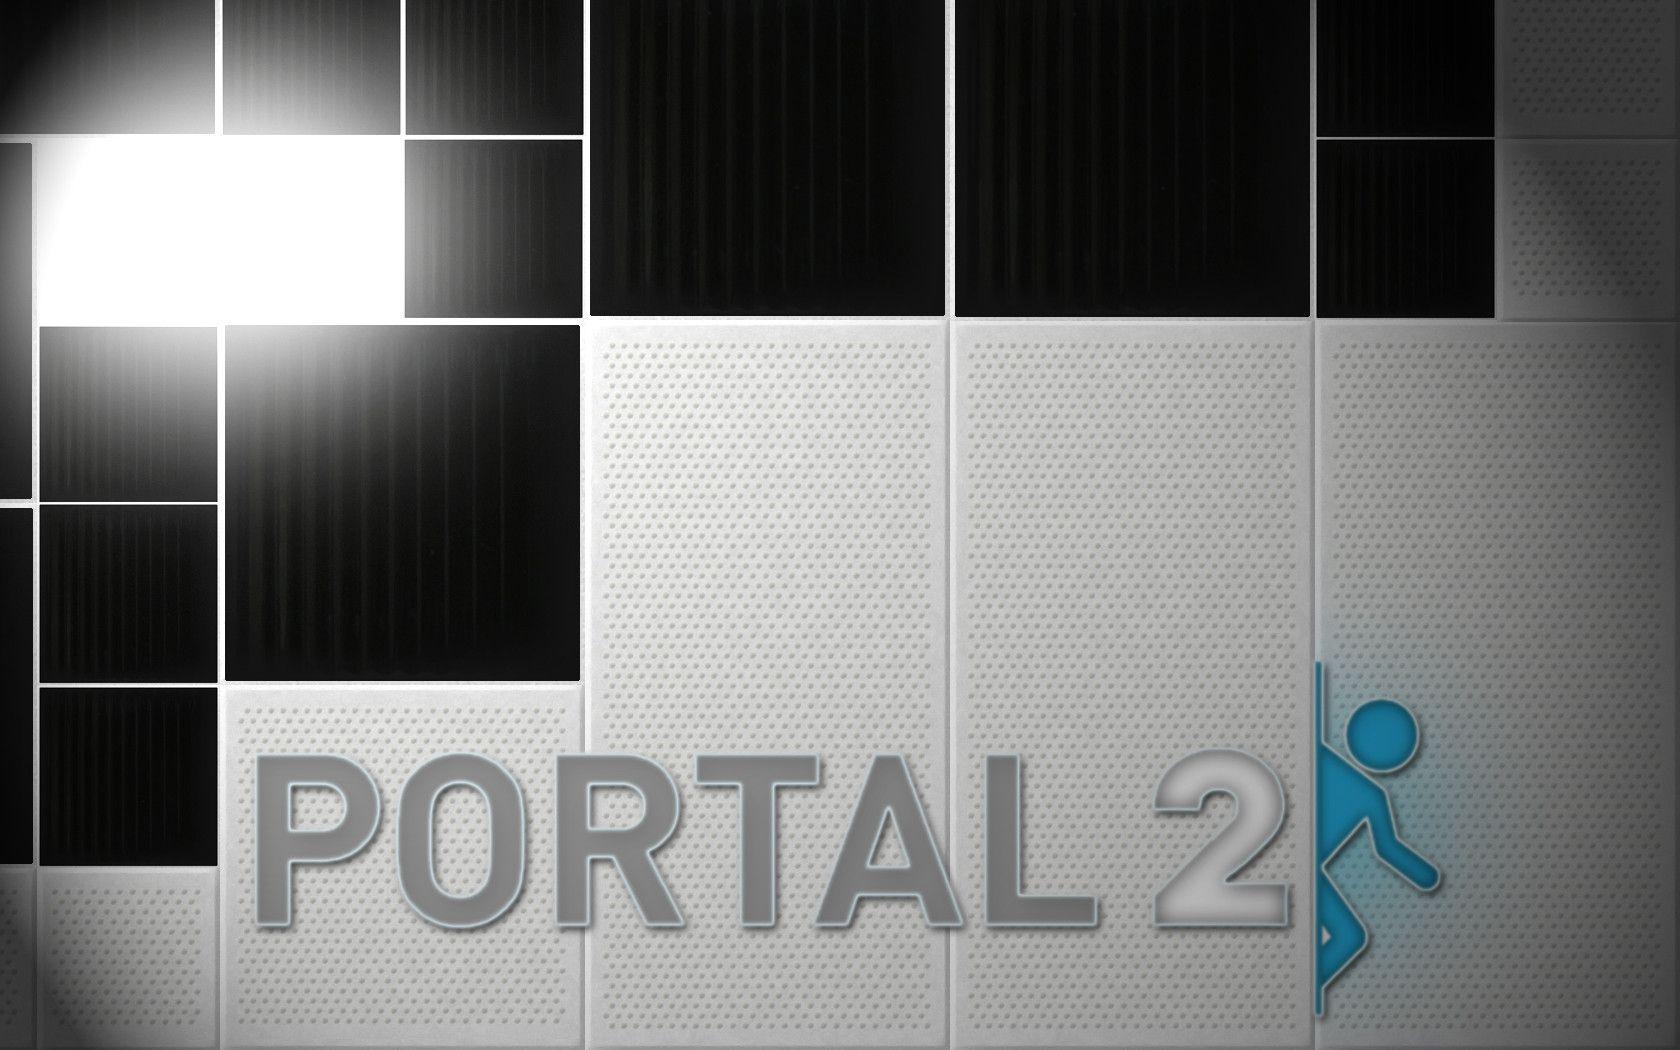 Portal_2_WALLPAPER_V2_by_